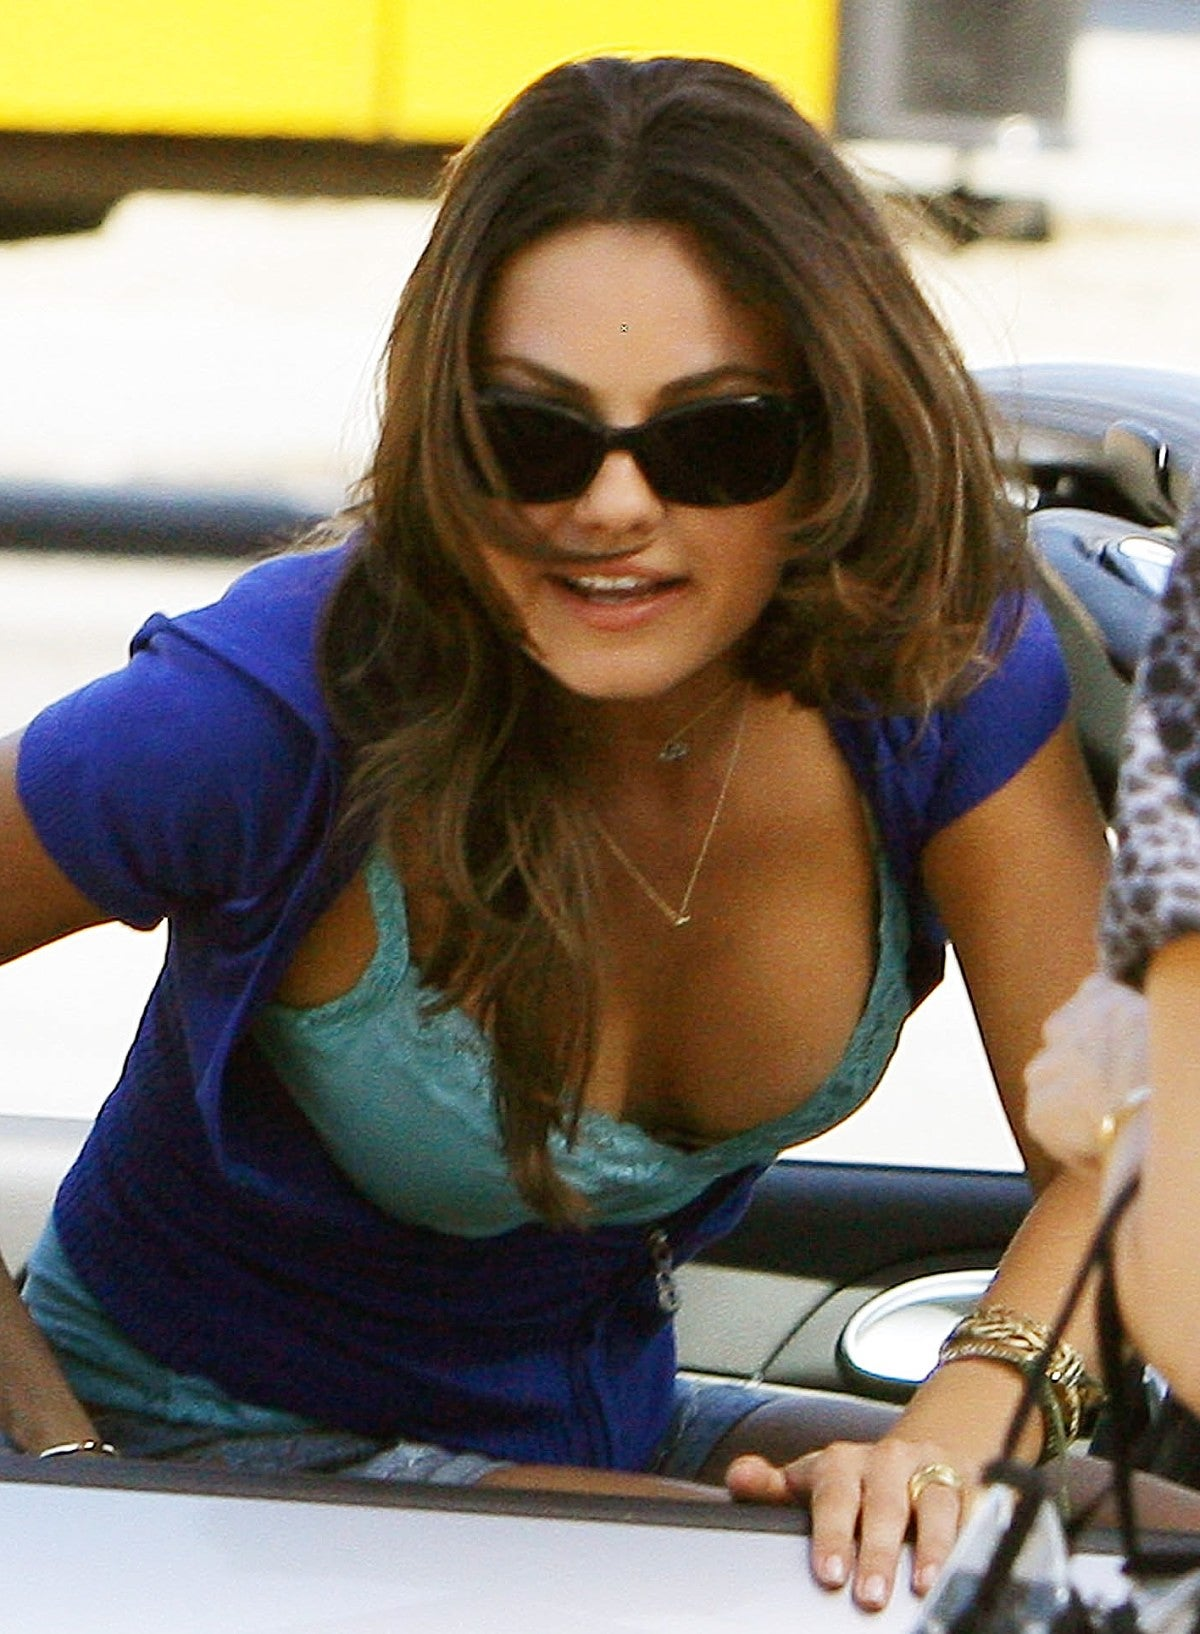 Cleavage Mila Kunis naked (91 photo), Paparazzi